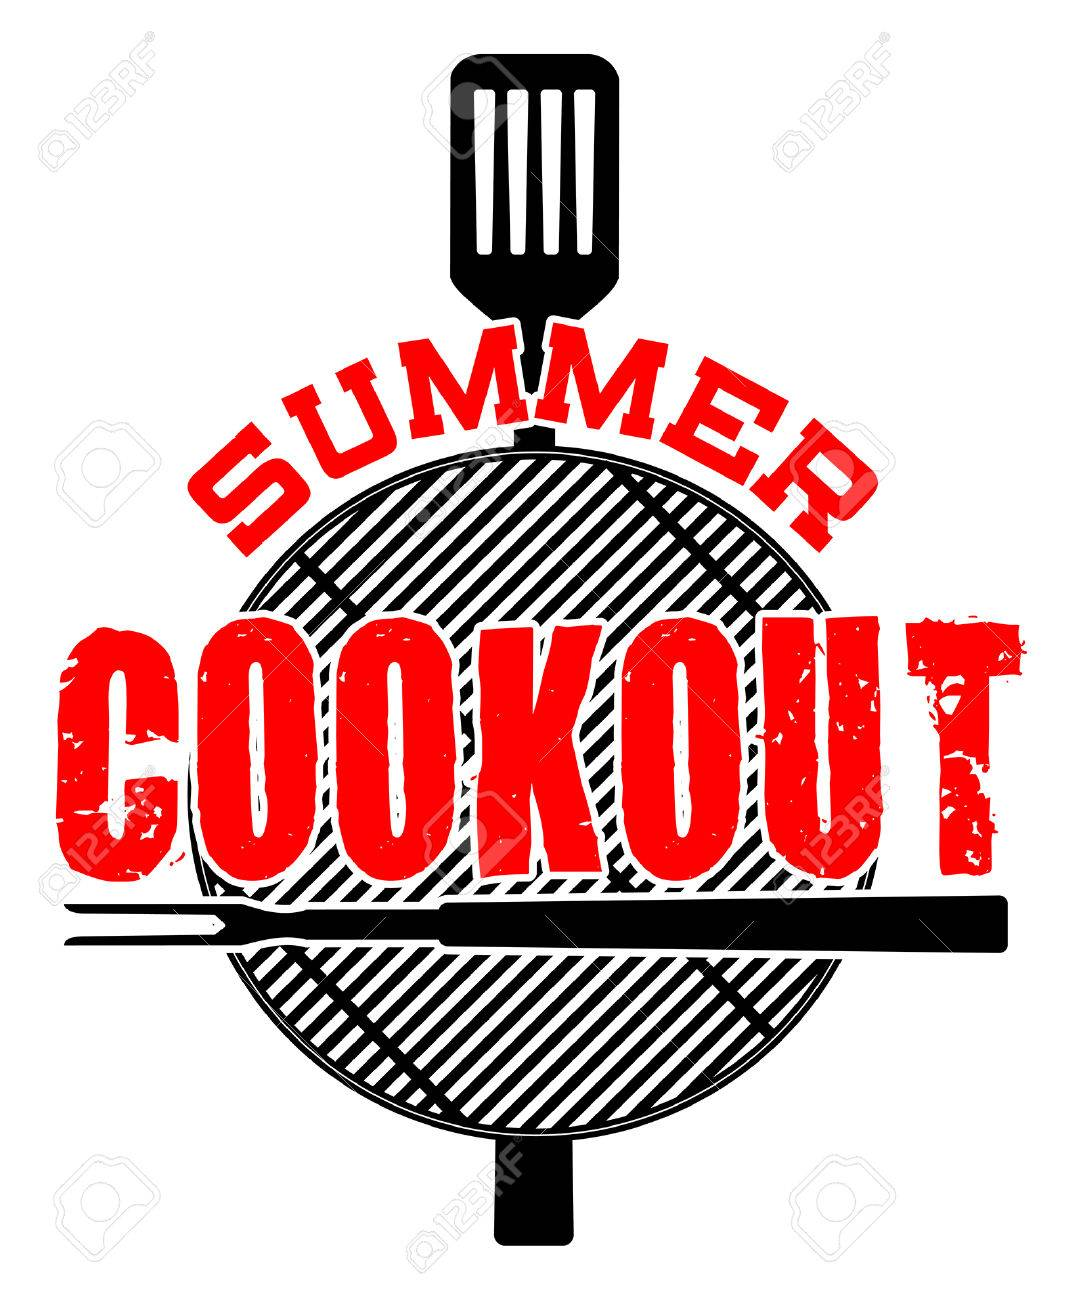 summer cookout is an illustration of a cookout or barbecue design